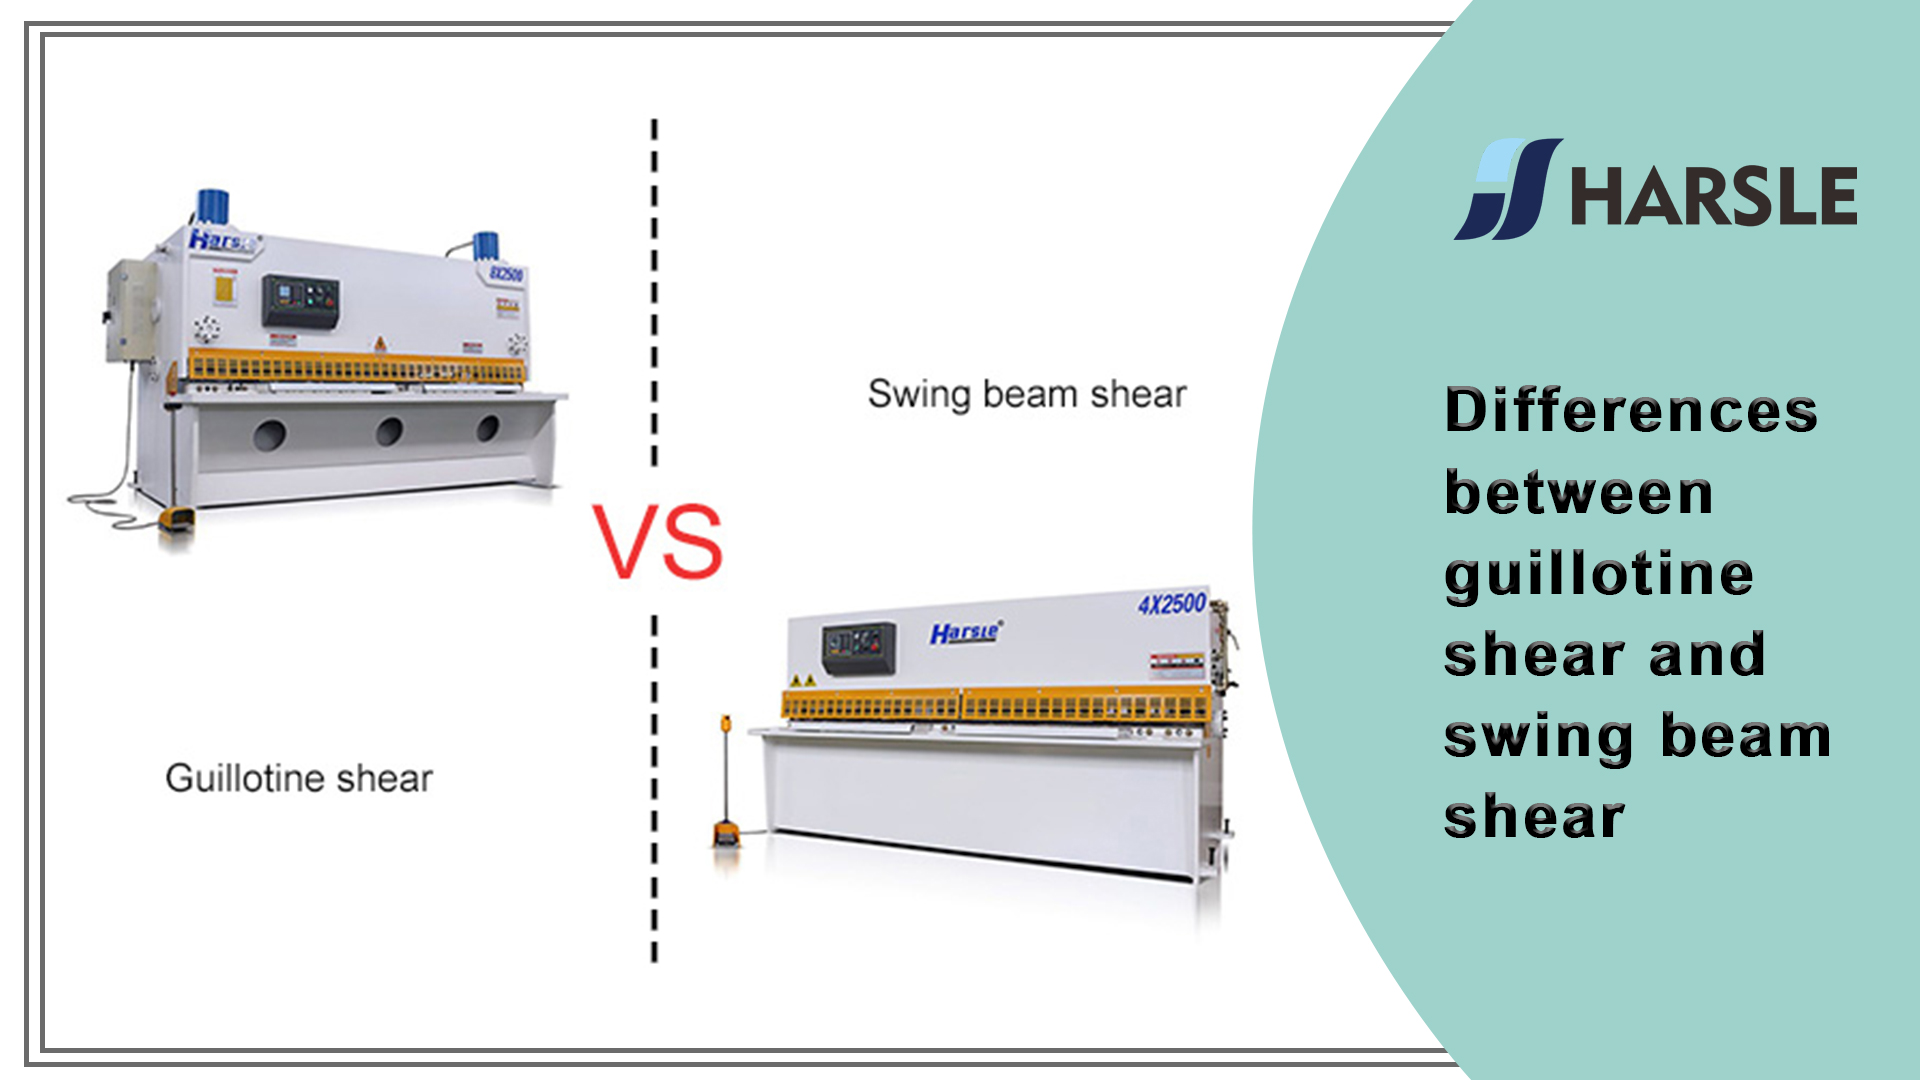 Differences between guillotine shear and swing beam shear